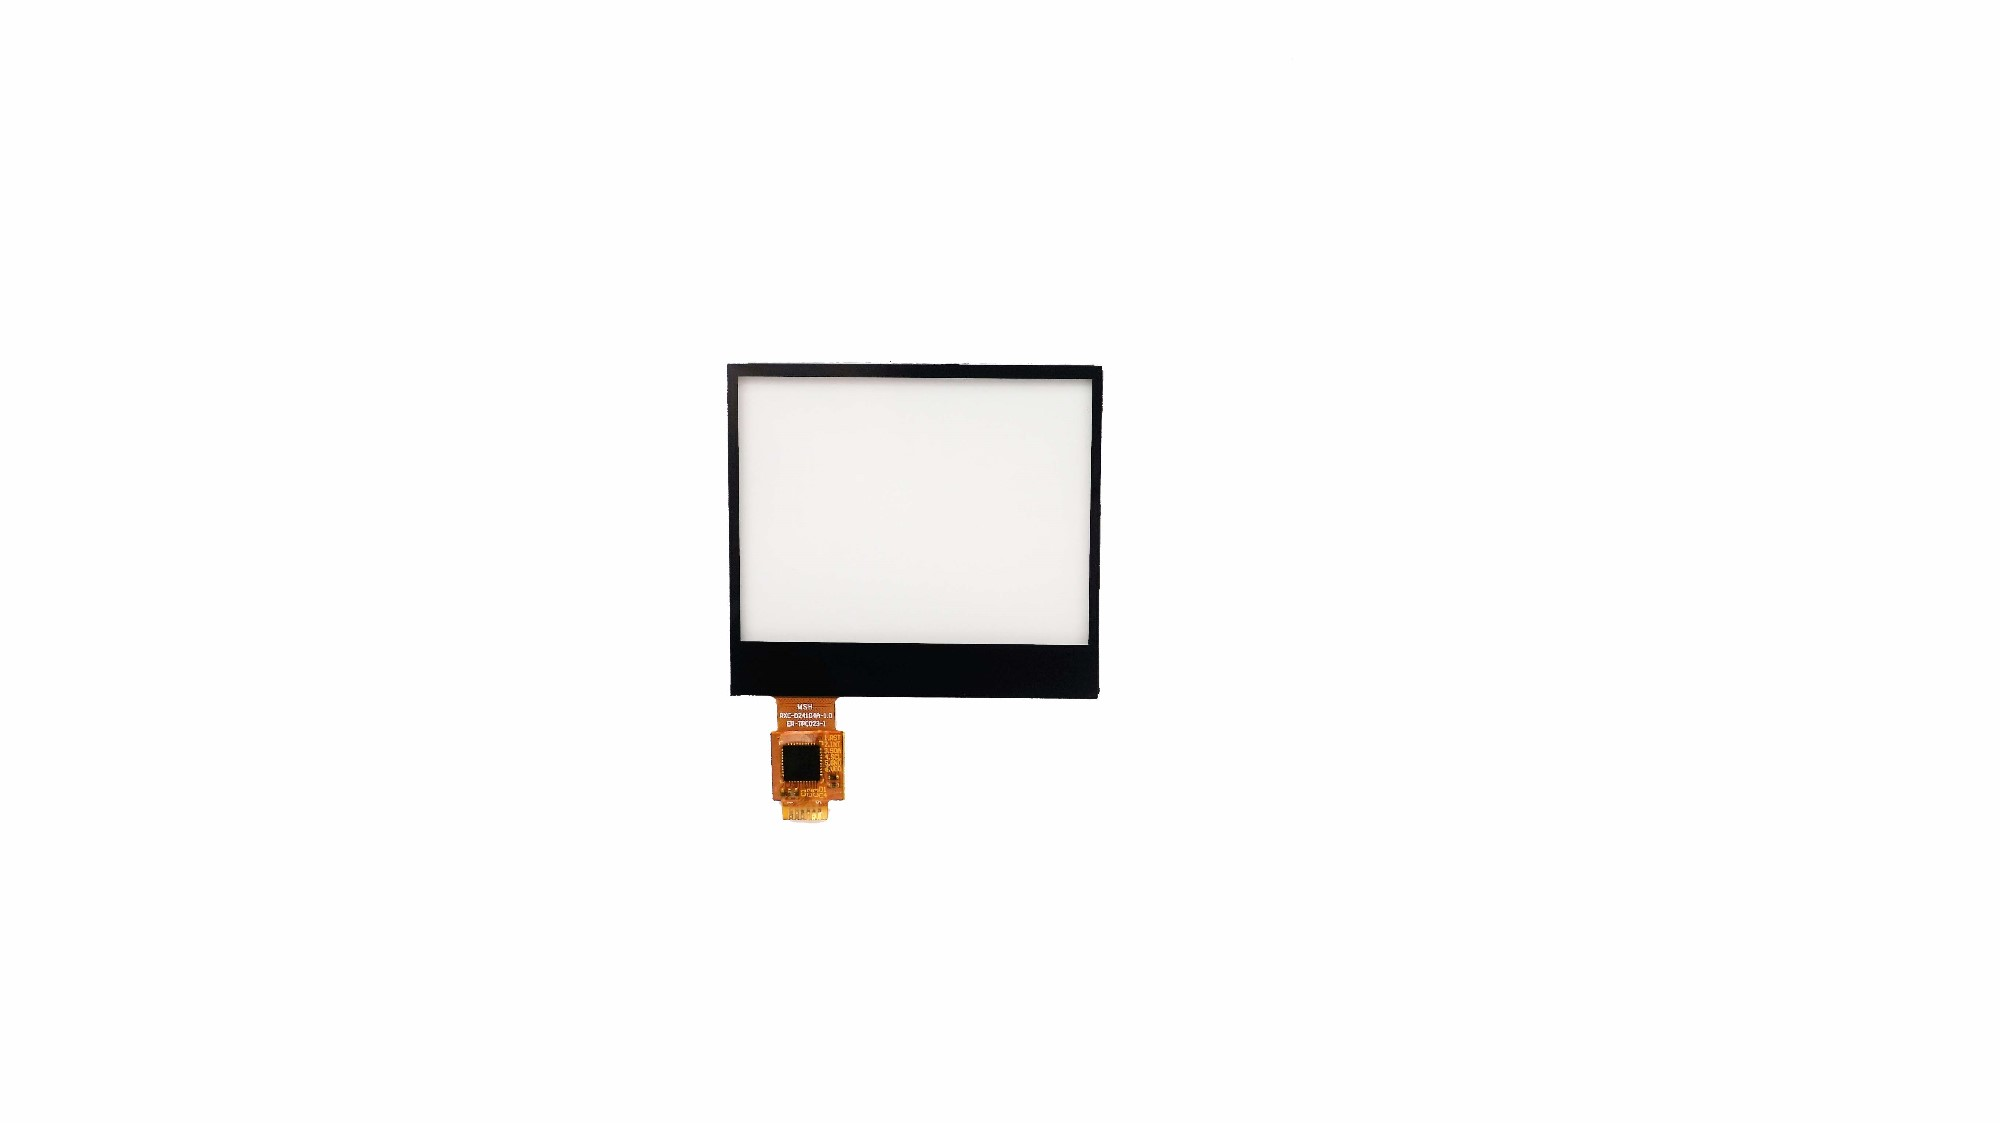 Custom China Digitizer Touch Screen 2.4 Inch Capacitive Touch Screen, Digitizer Touch Screen 2.4 Inch Capacitive Touch Screen Factory, Digitizer Touch Screen 2.4 Inch Capacitive Touch Screen OEM